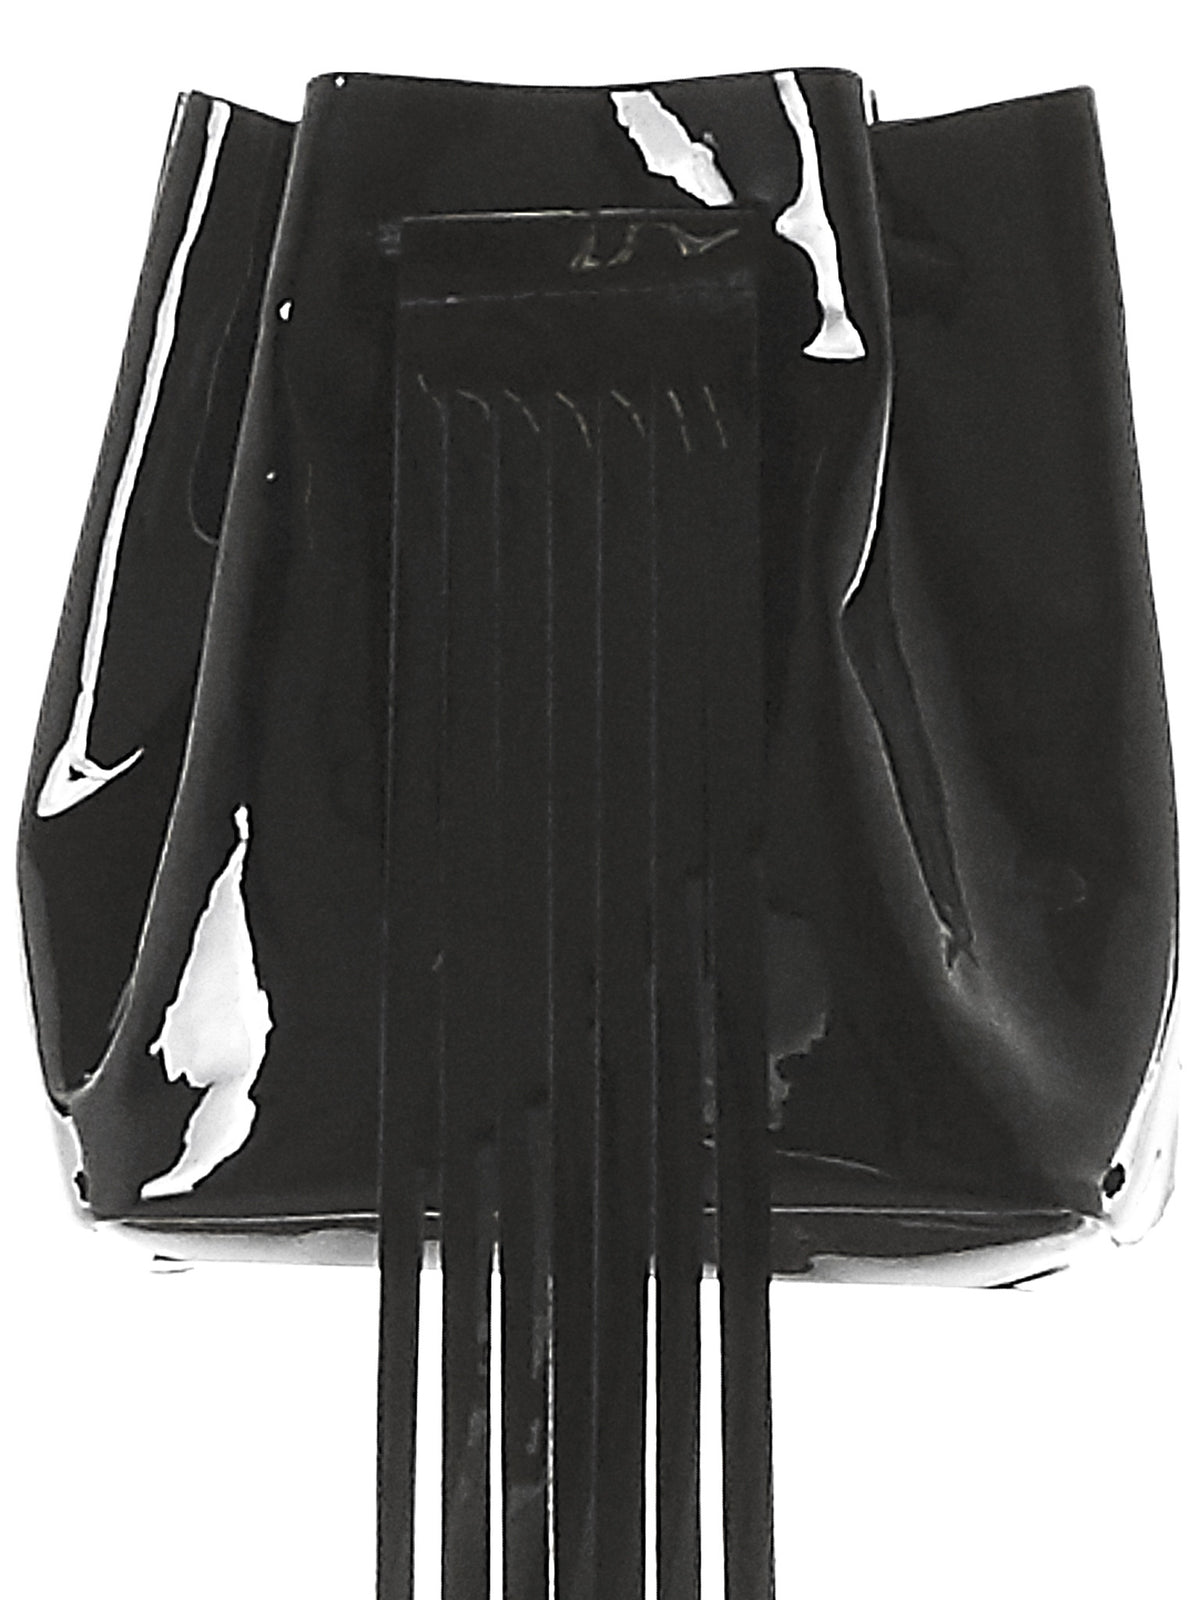 Polished Fringe Bag (3.17 MINI BUCKET BLACK-GLOSSY) - H. Lorenzo